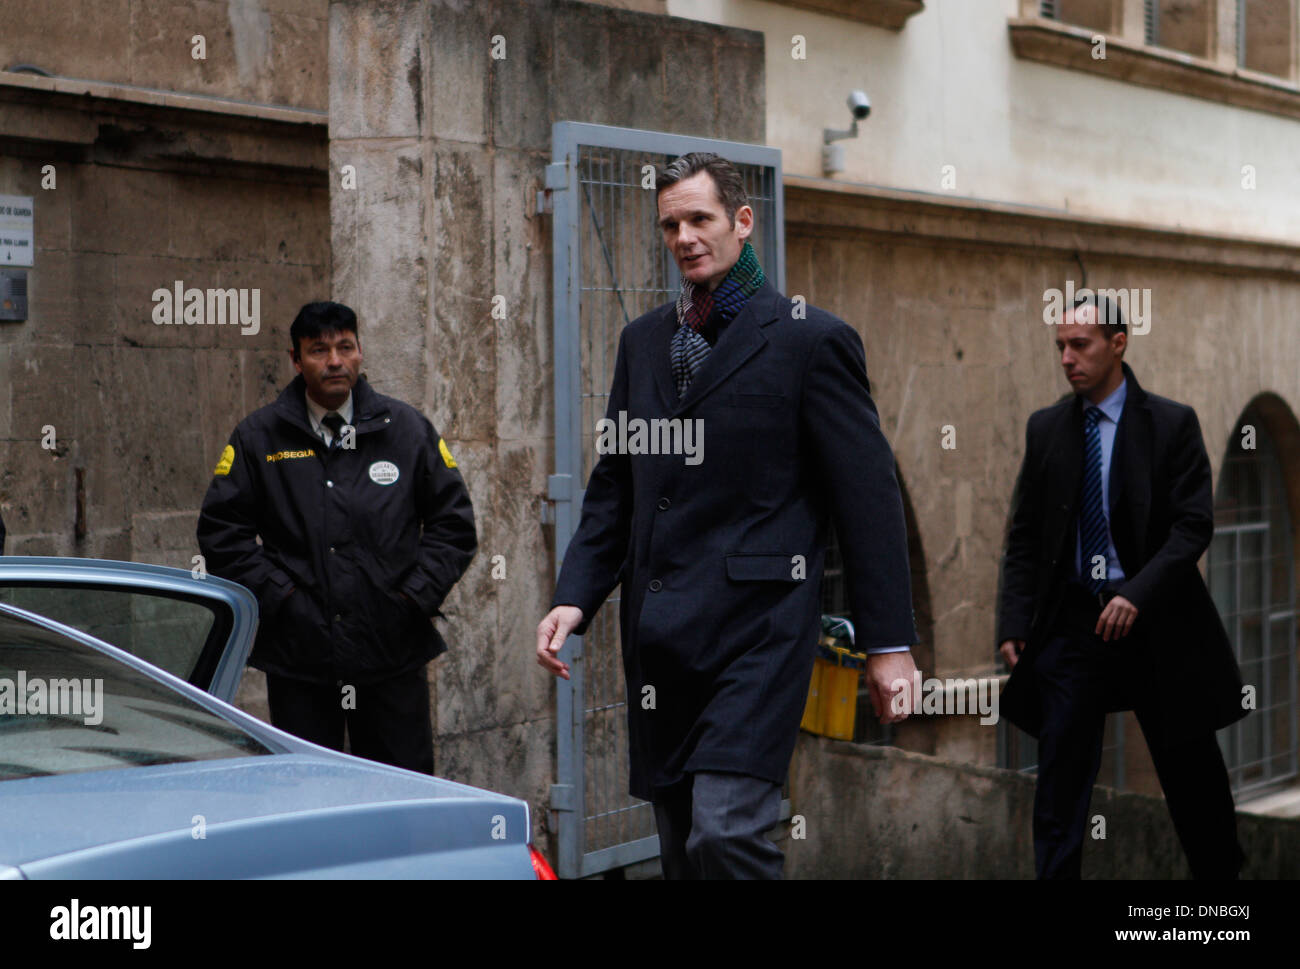 The son in law of Spain´s king Juan Carlos, Inaki Urdangarin (Iñaki) arrives to Majorca´s court accused of corruption. - Stock Image